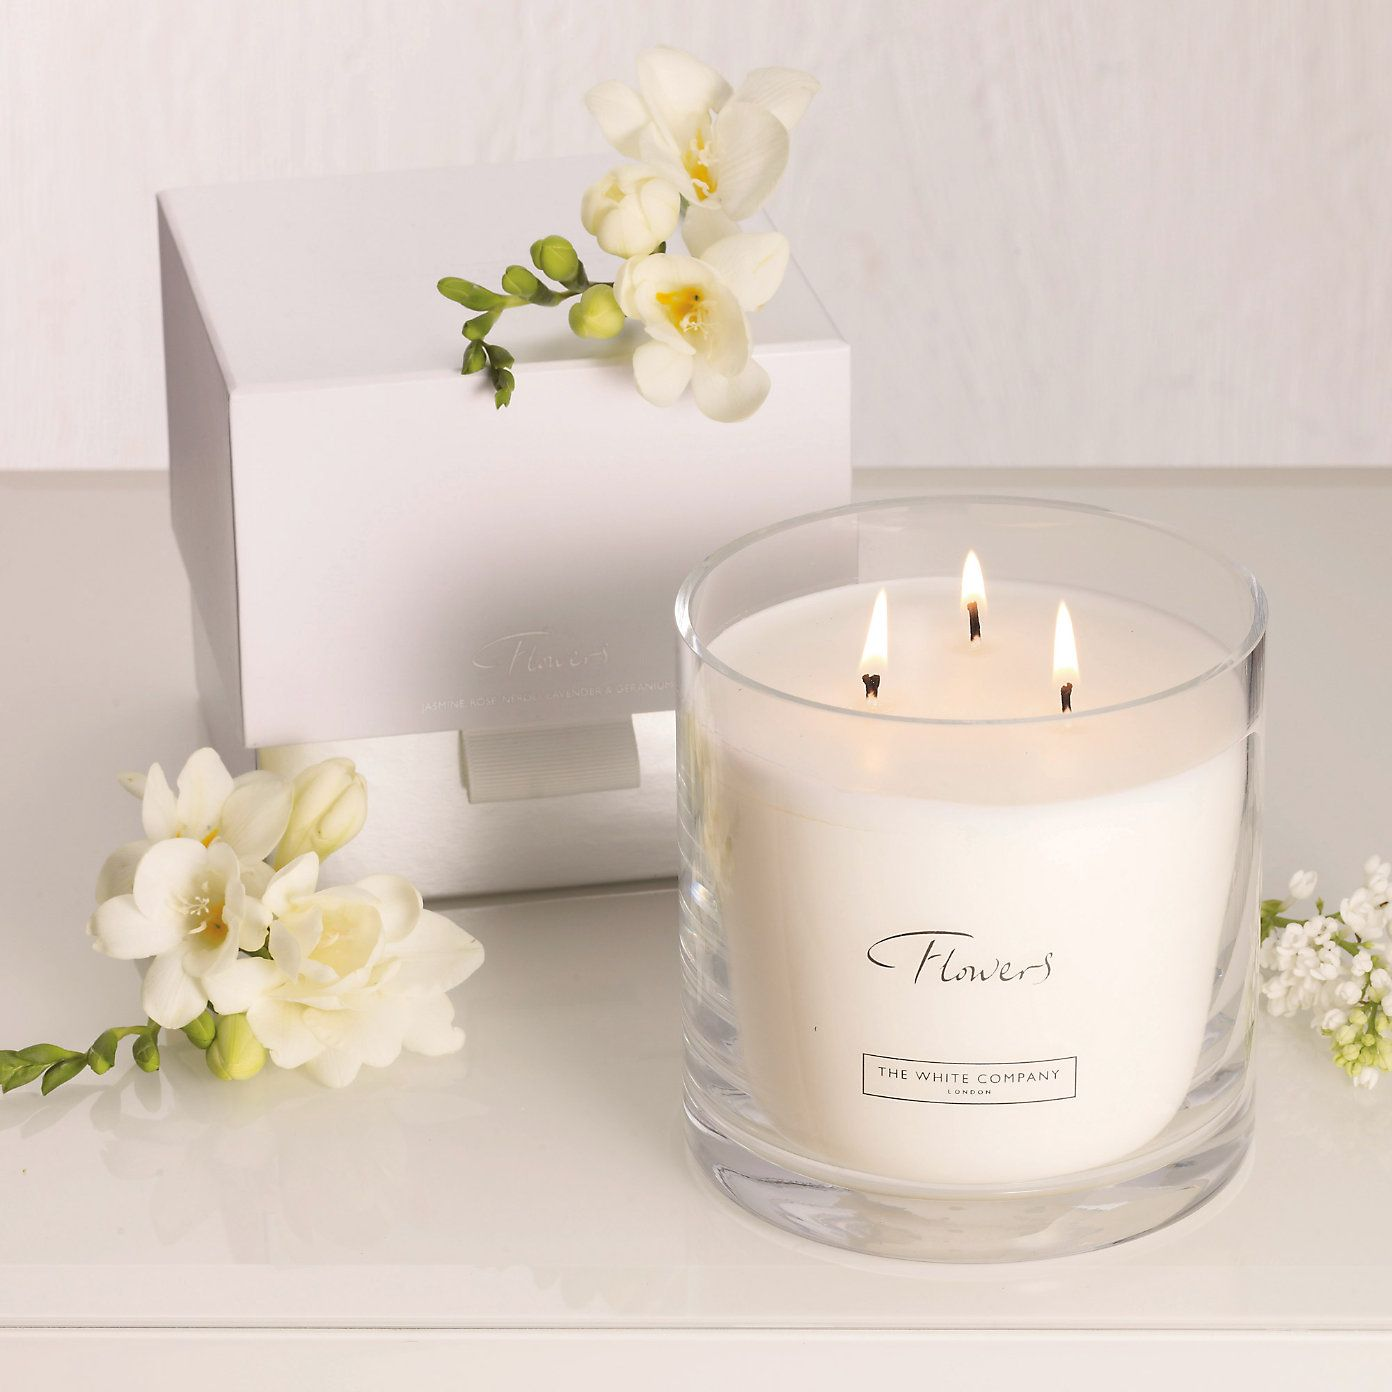 Buy Candles Online Buy Candles And Fragrance Gt Candles Gt Flowers Large 3 Wick